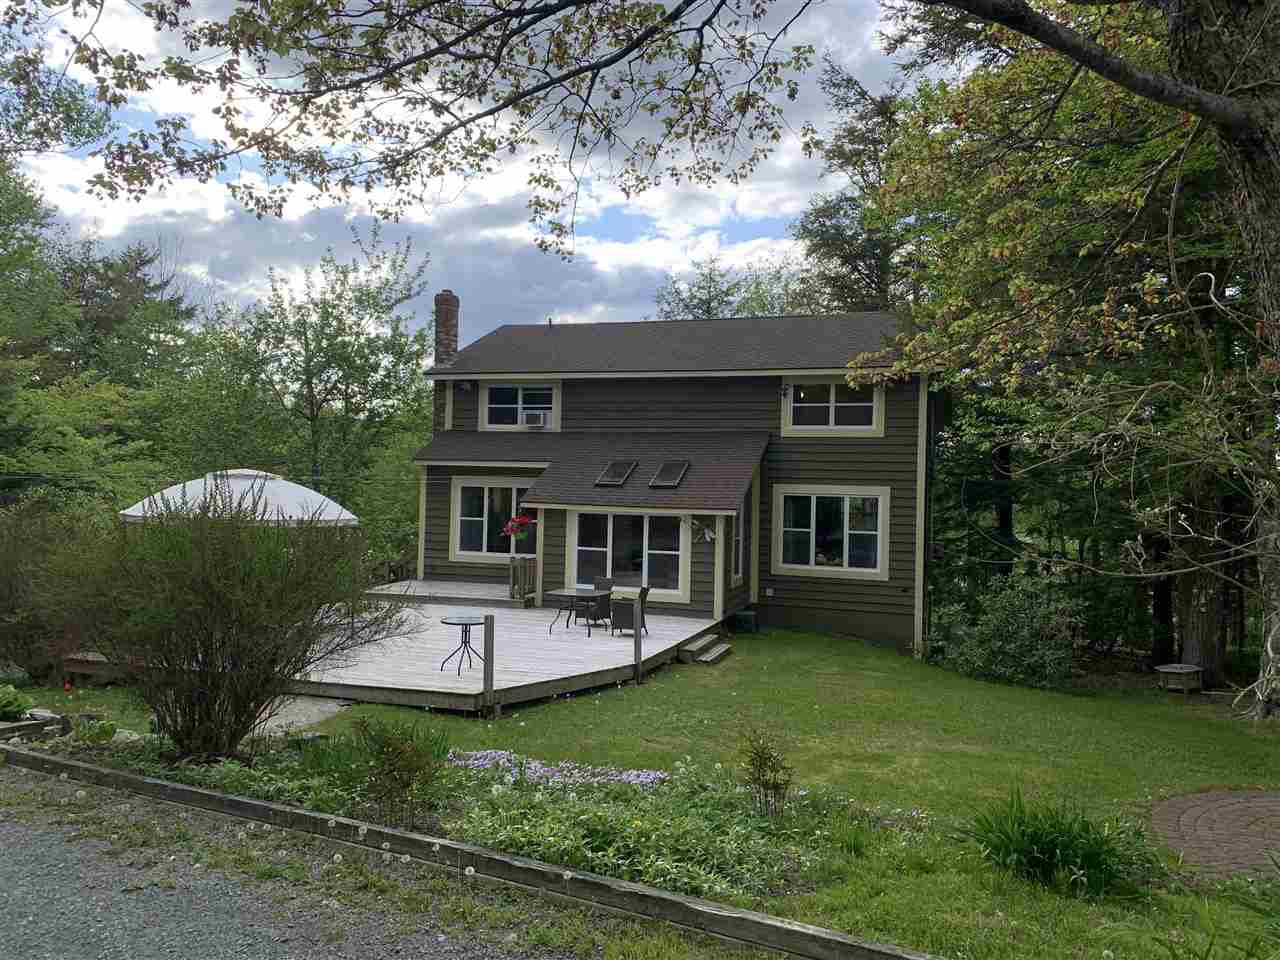 Main Photo: 91 Springfield Lake Road in Middle Sackville: 26-Beaverbank, Upper Sackville Residential for sale (Halifax-Dartmouth)  : MLS®# 202005806